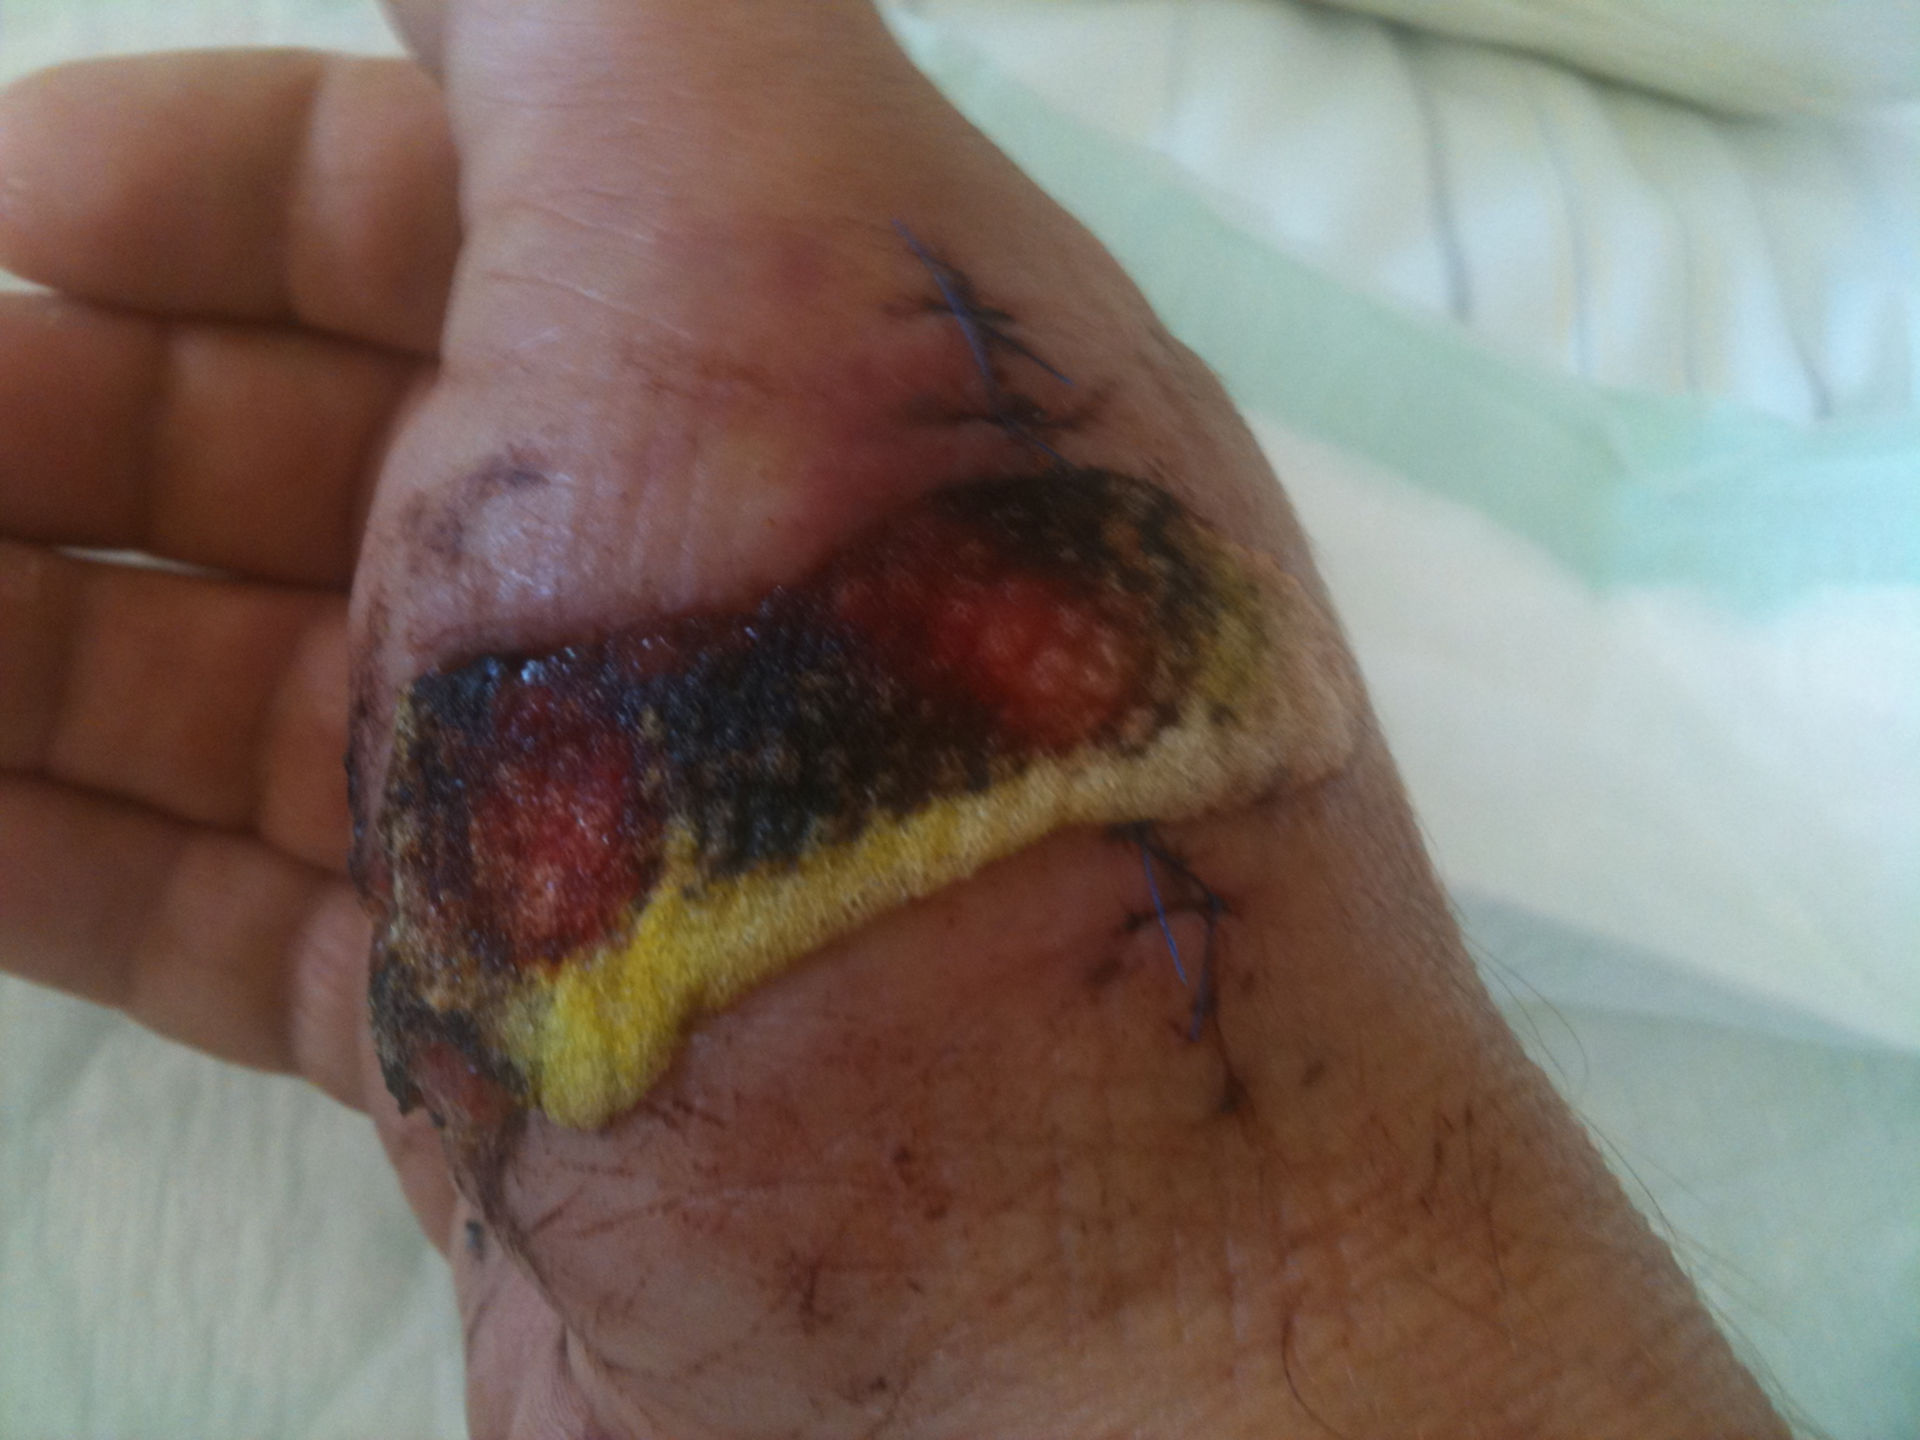 Deposition in the wound